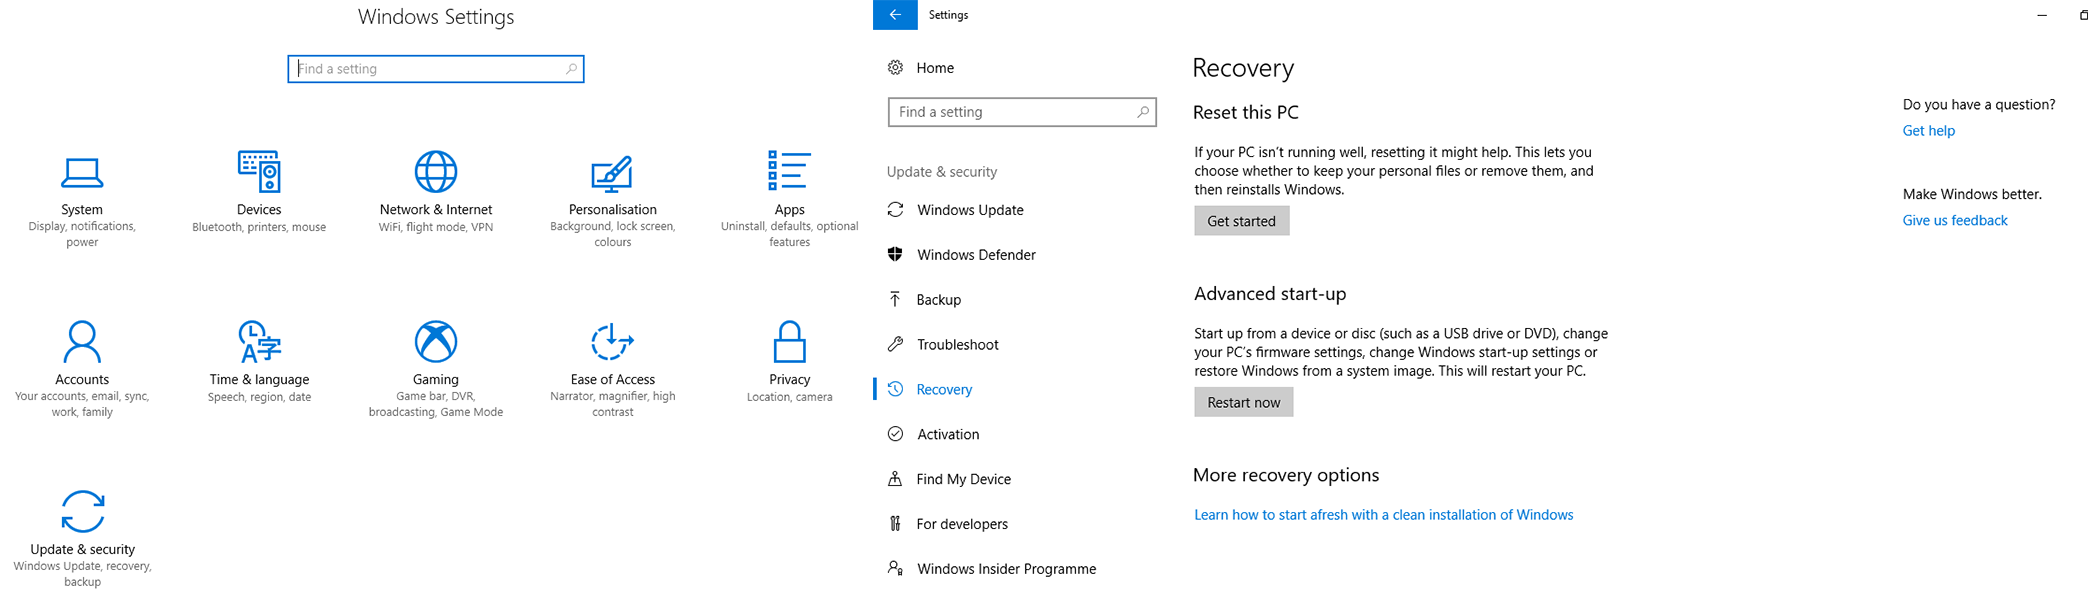 start pc safe mode settings - Start Your PC in Safe Mode in Windows 10